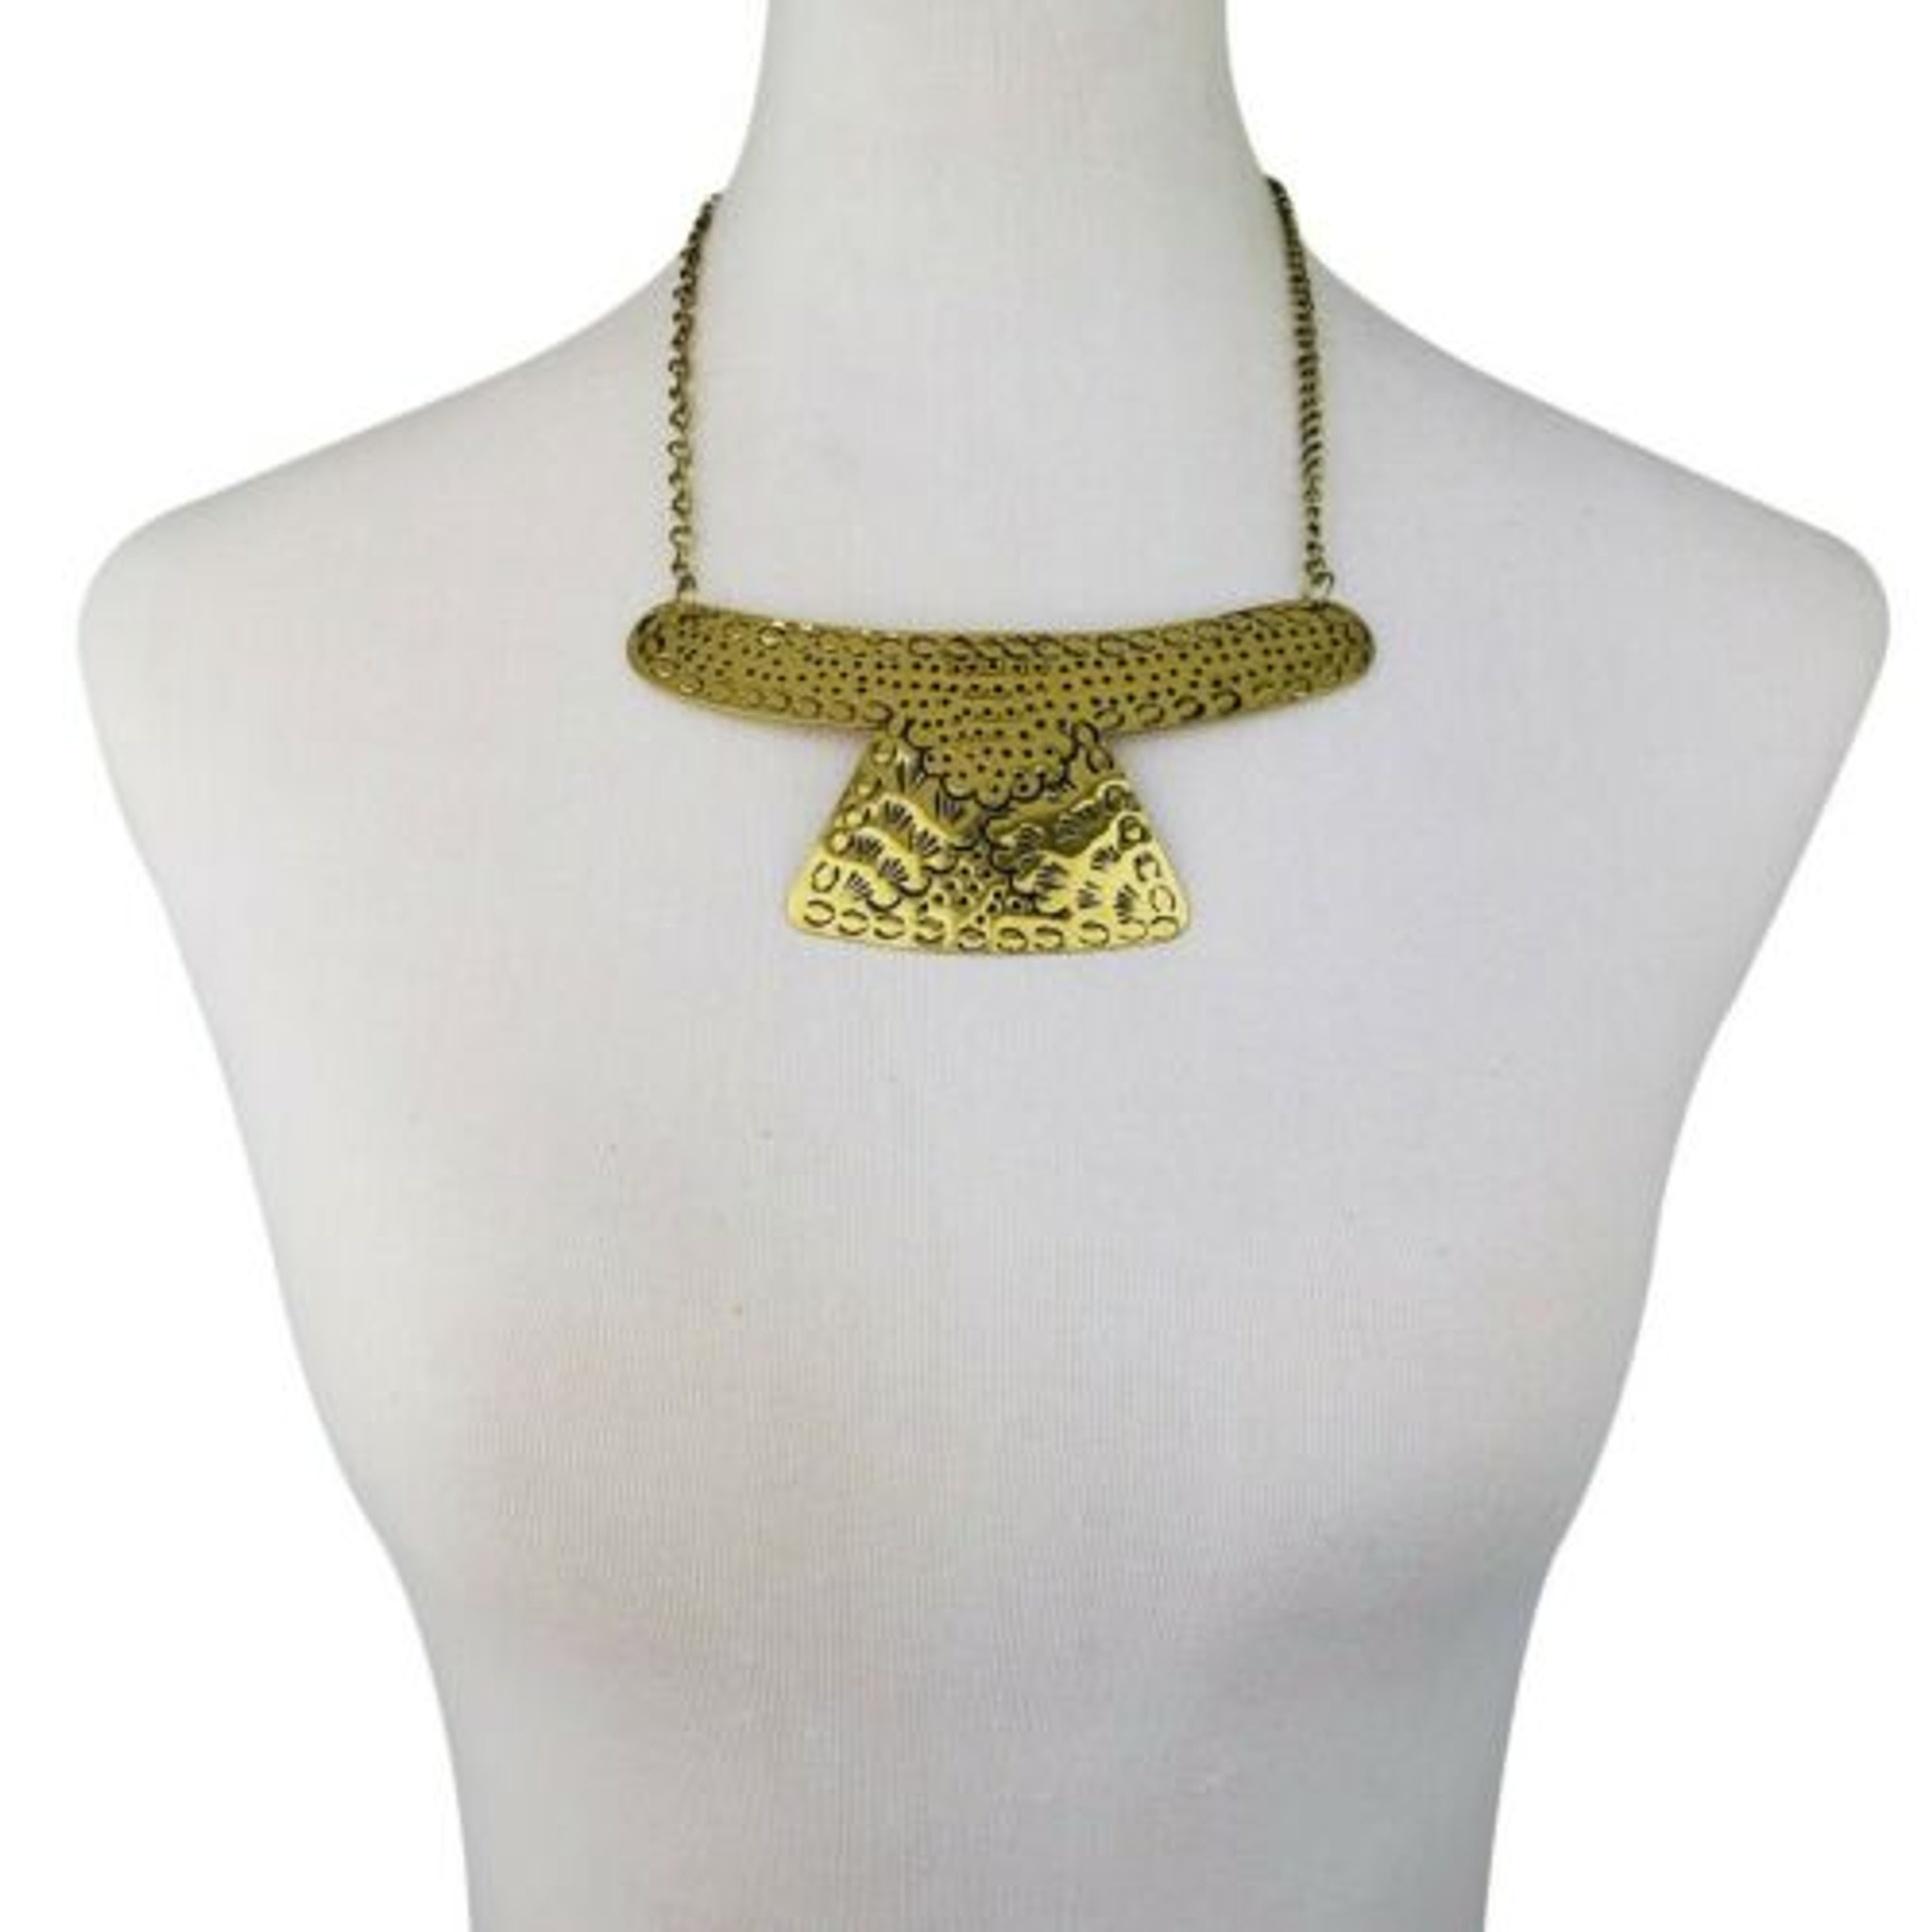 Afryea Gold Plated Choker Necklace with Cuff and Earrings Set